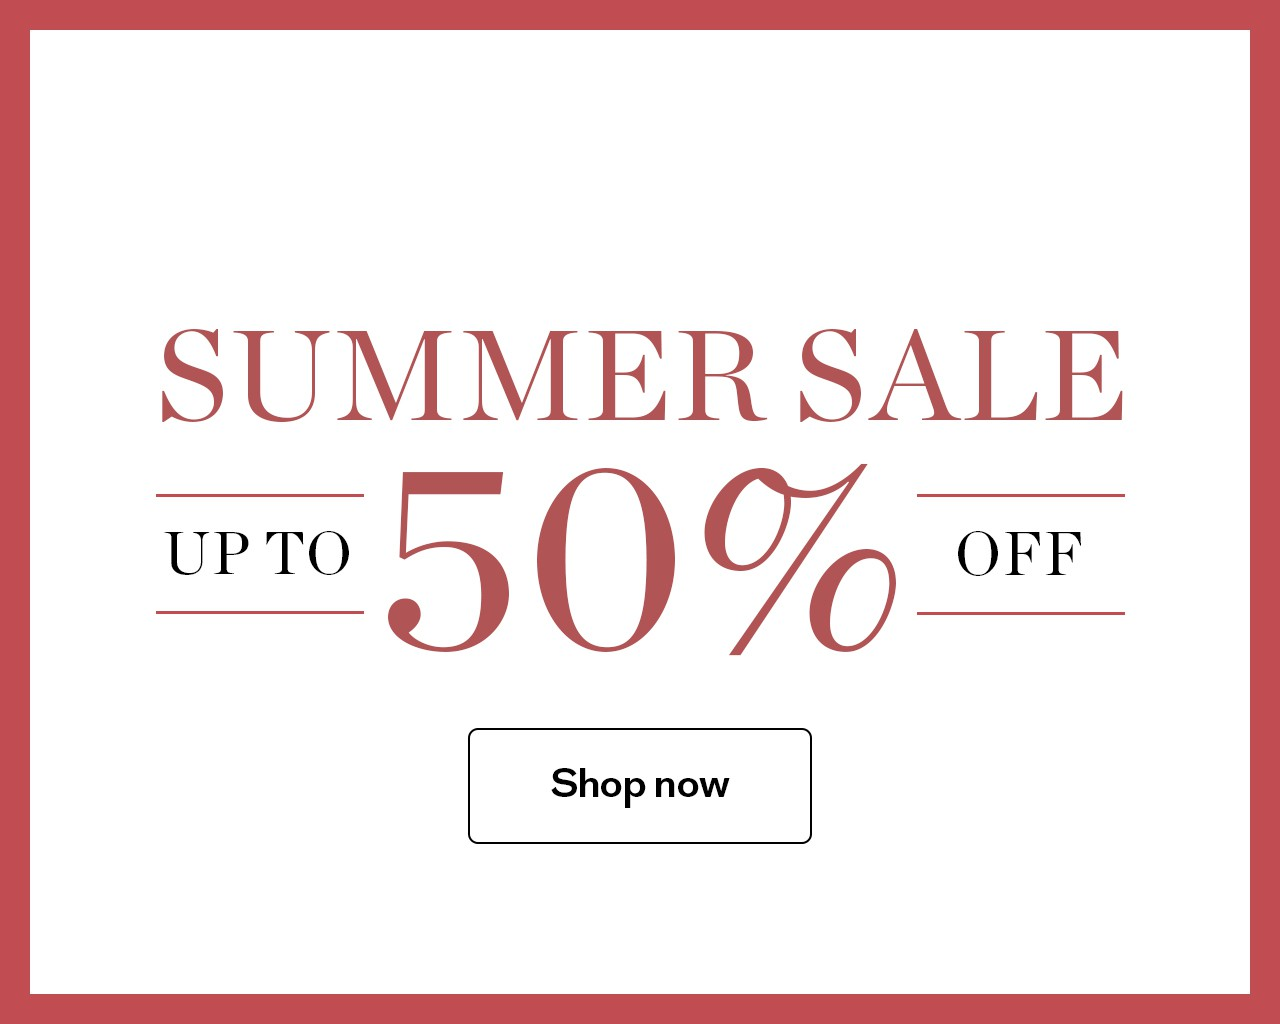 Discounts of up to 50% with our Summer Sale at Berry Bros. & Rudd